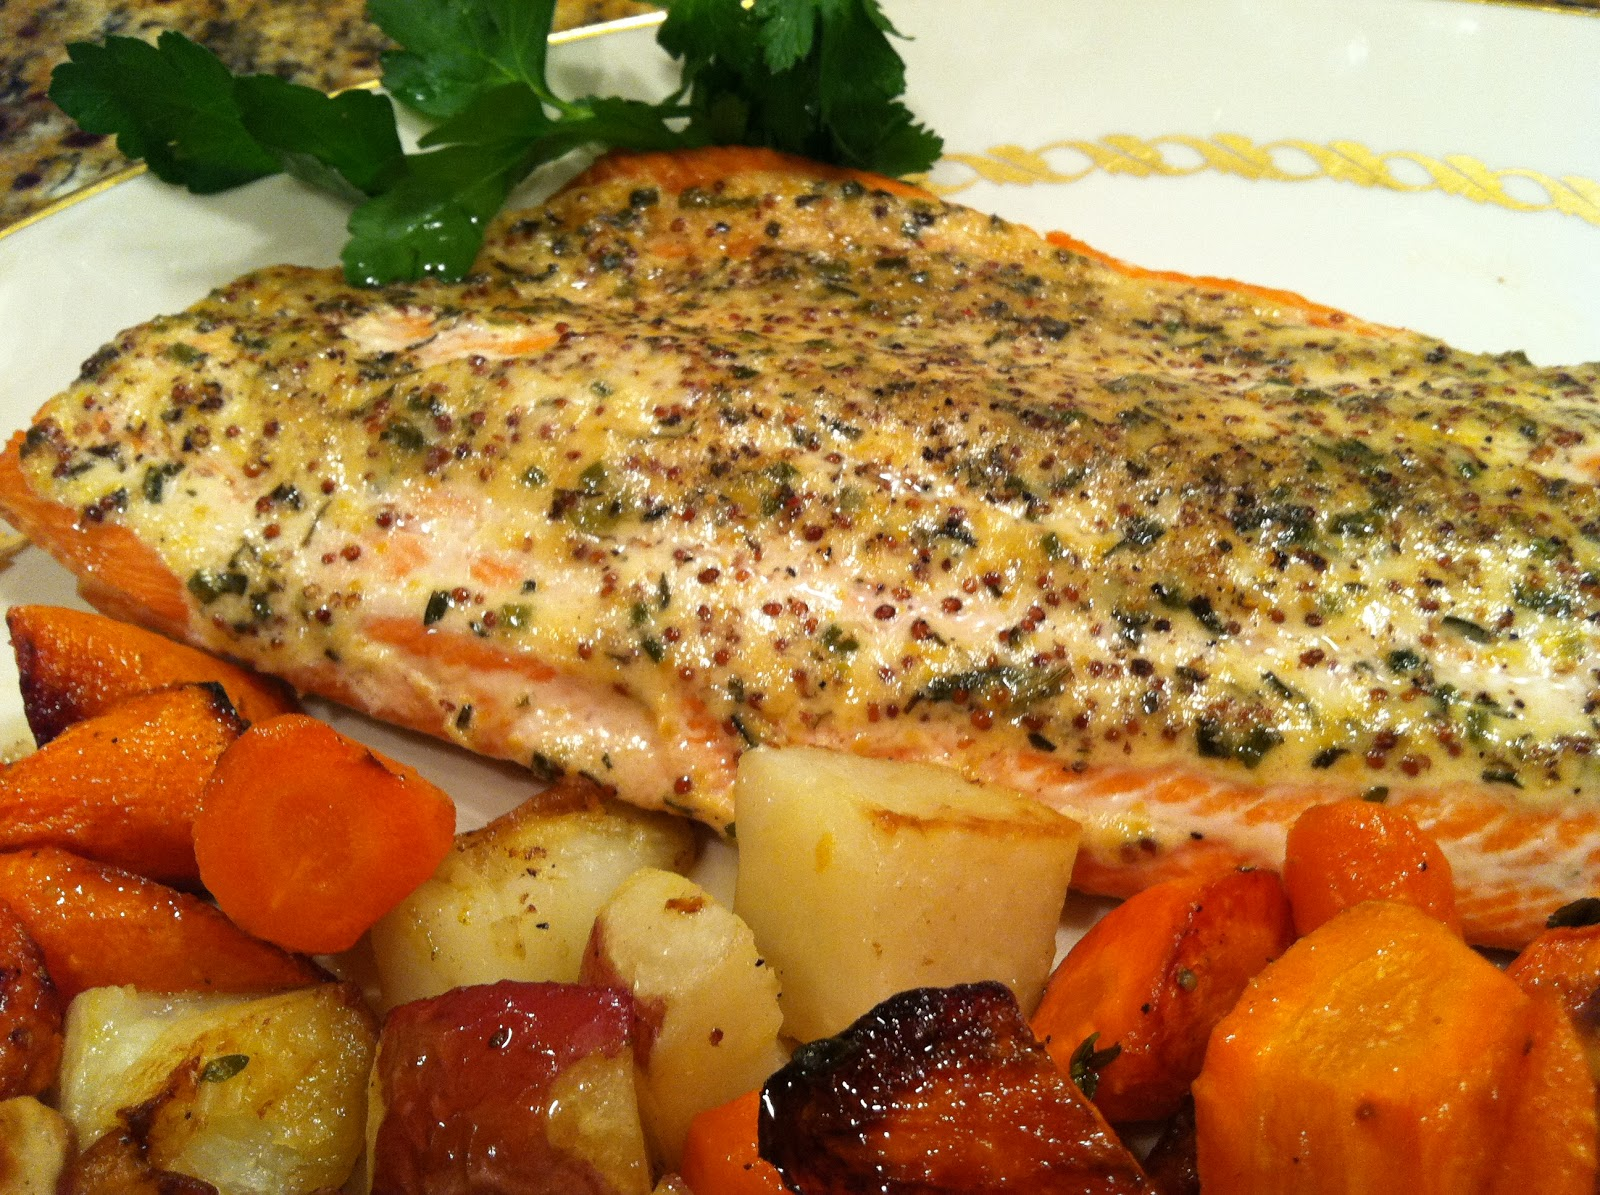 ... with Chez Cindy: ChezCindy: Roasted Salmon with Spring Herb Sauce